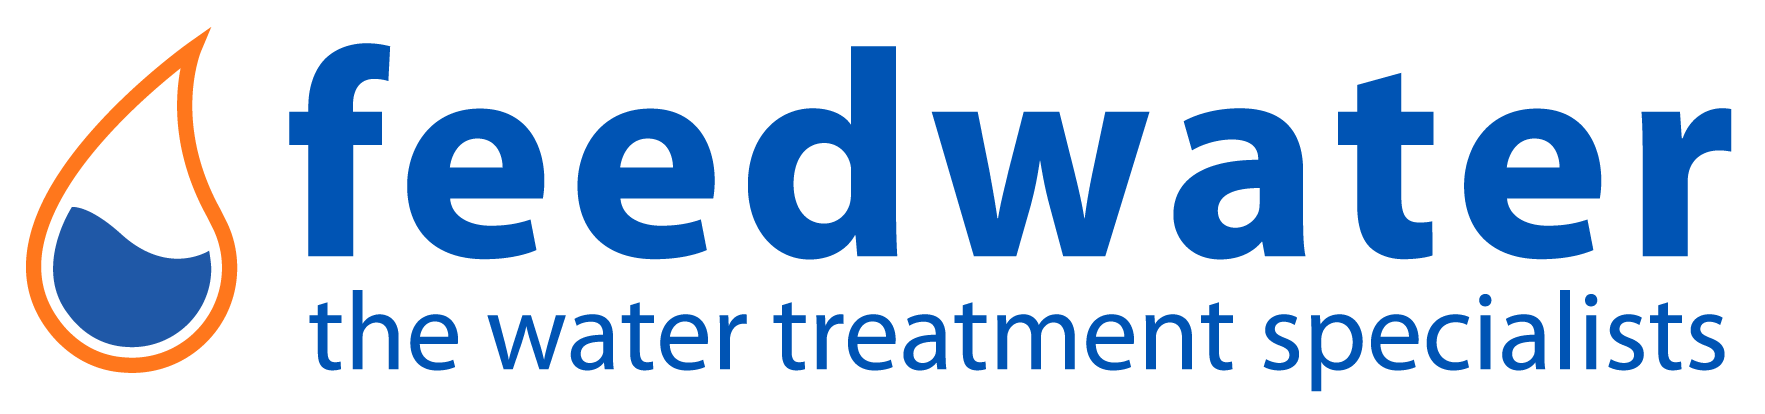 Read Feedwater Ltd Reviews